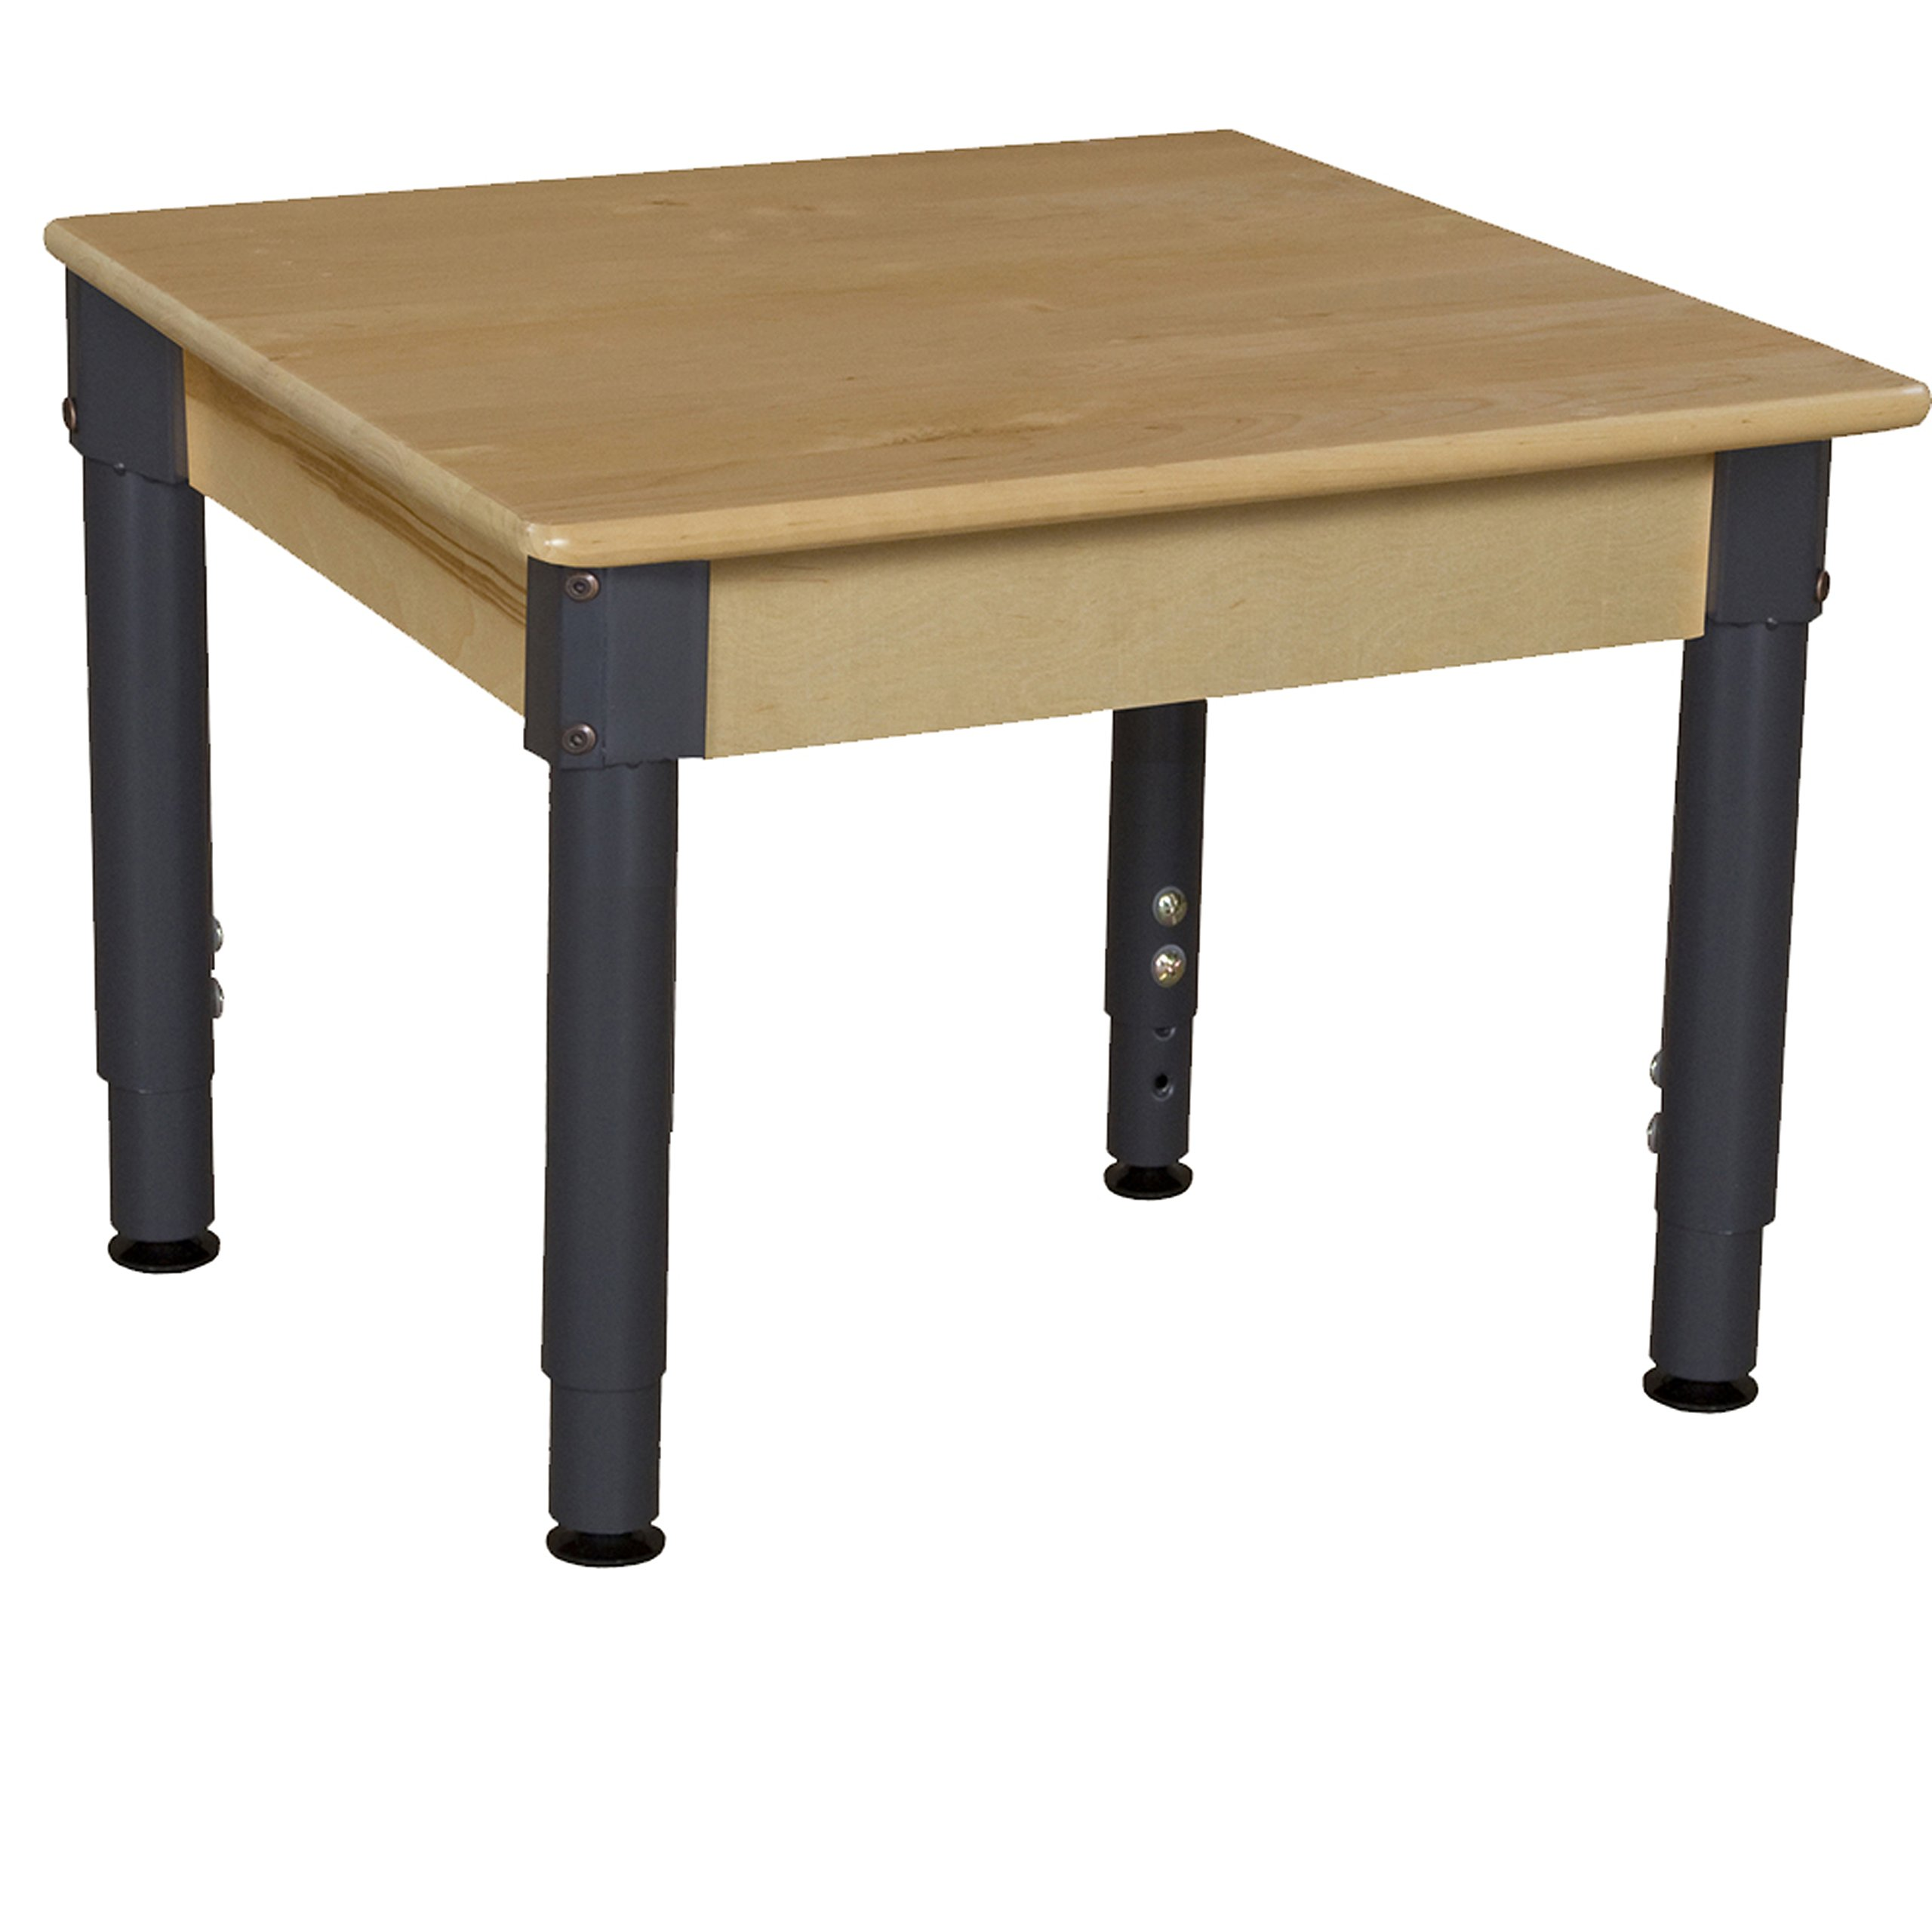 Wood Designs WD824A1217 24'' Square Hardwood Table with  12''-17'' Adjustable Legs